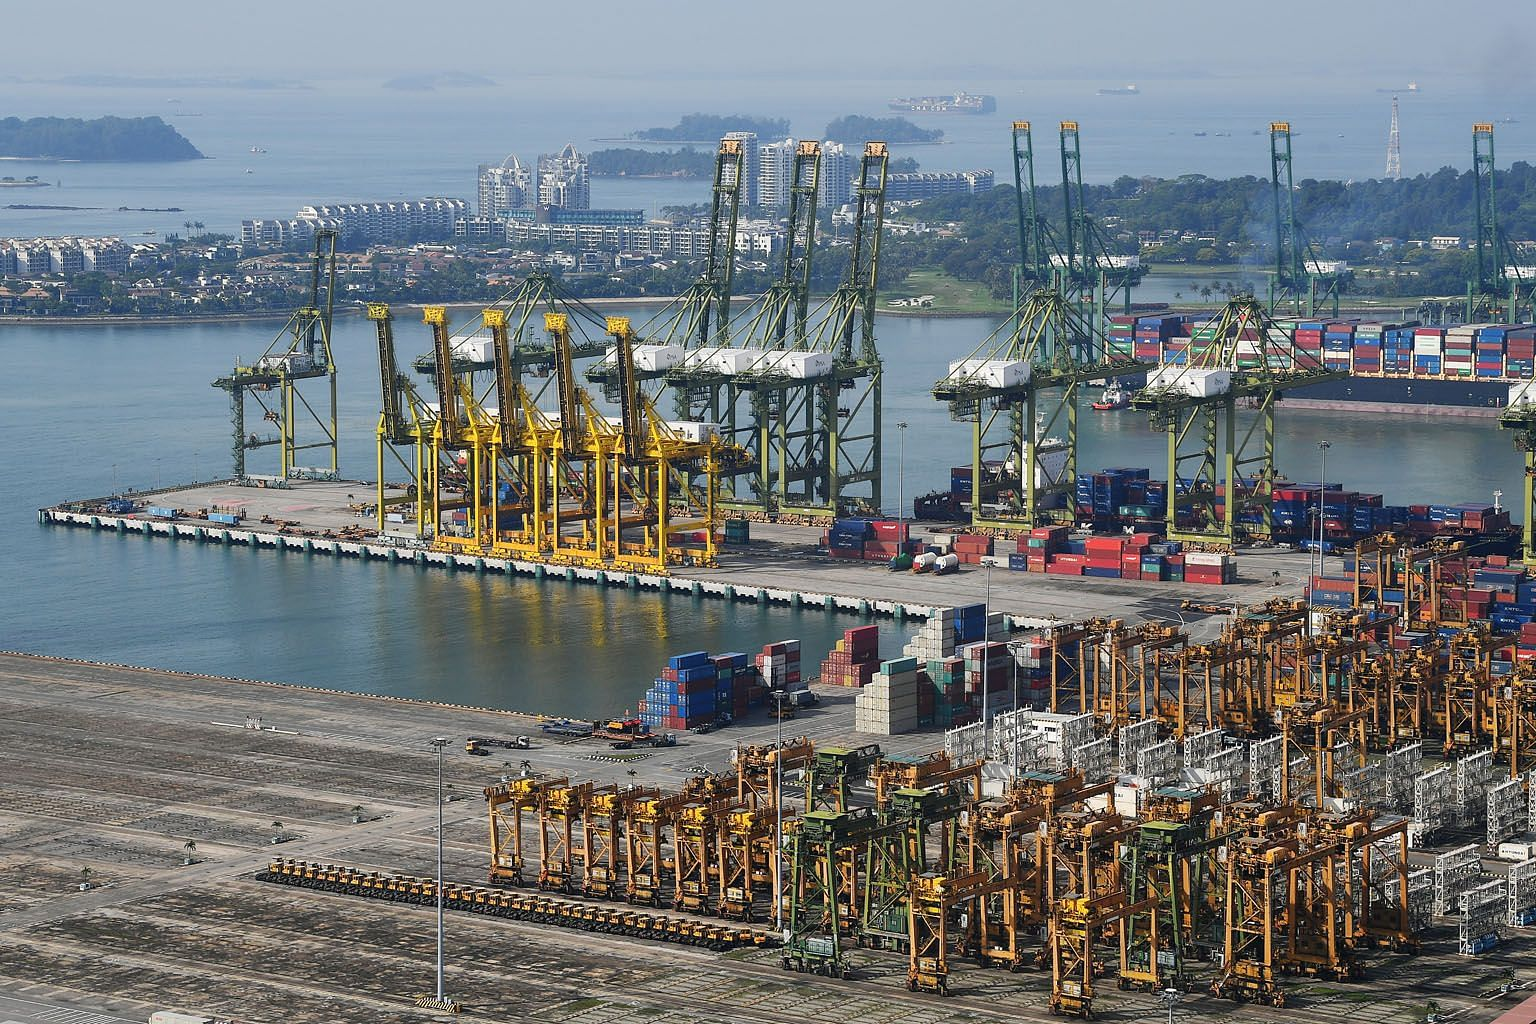 China's imports from Singapore grew for a second straight month after six consecutive months of decline, noted UOB economist Barnabas Gan, adding that if this persists, it could serve as a cushion for Singapore's manufacturing export environment. ST